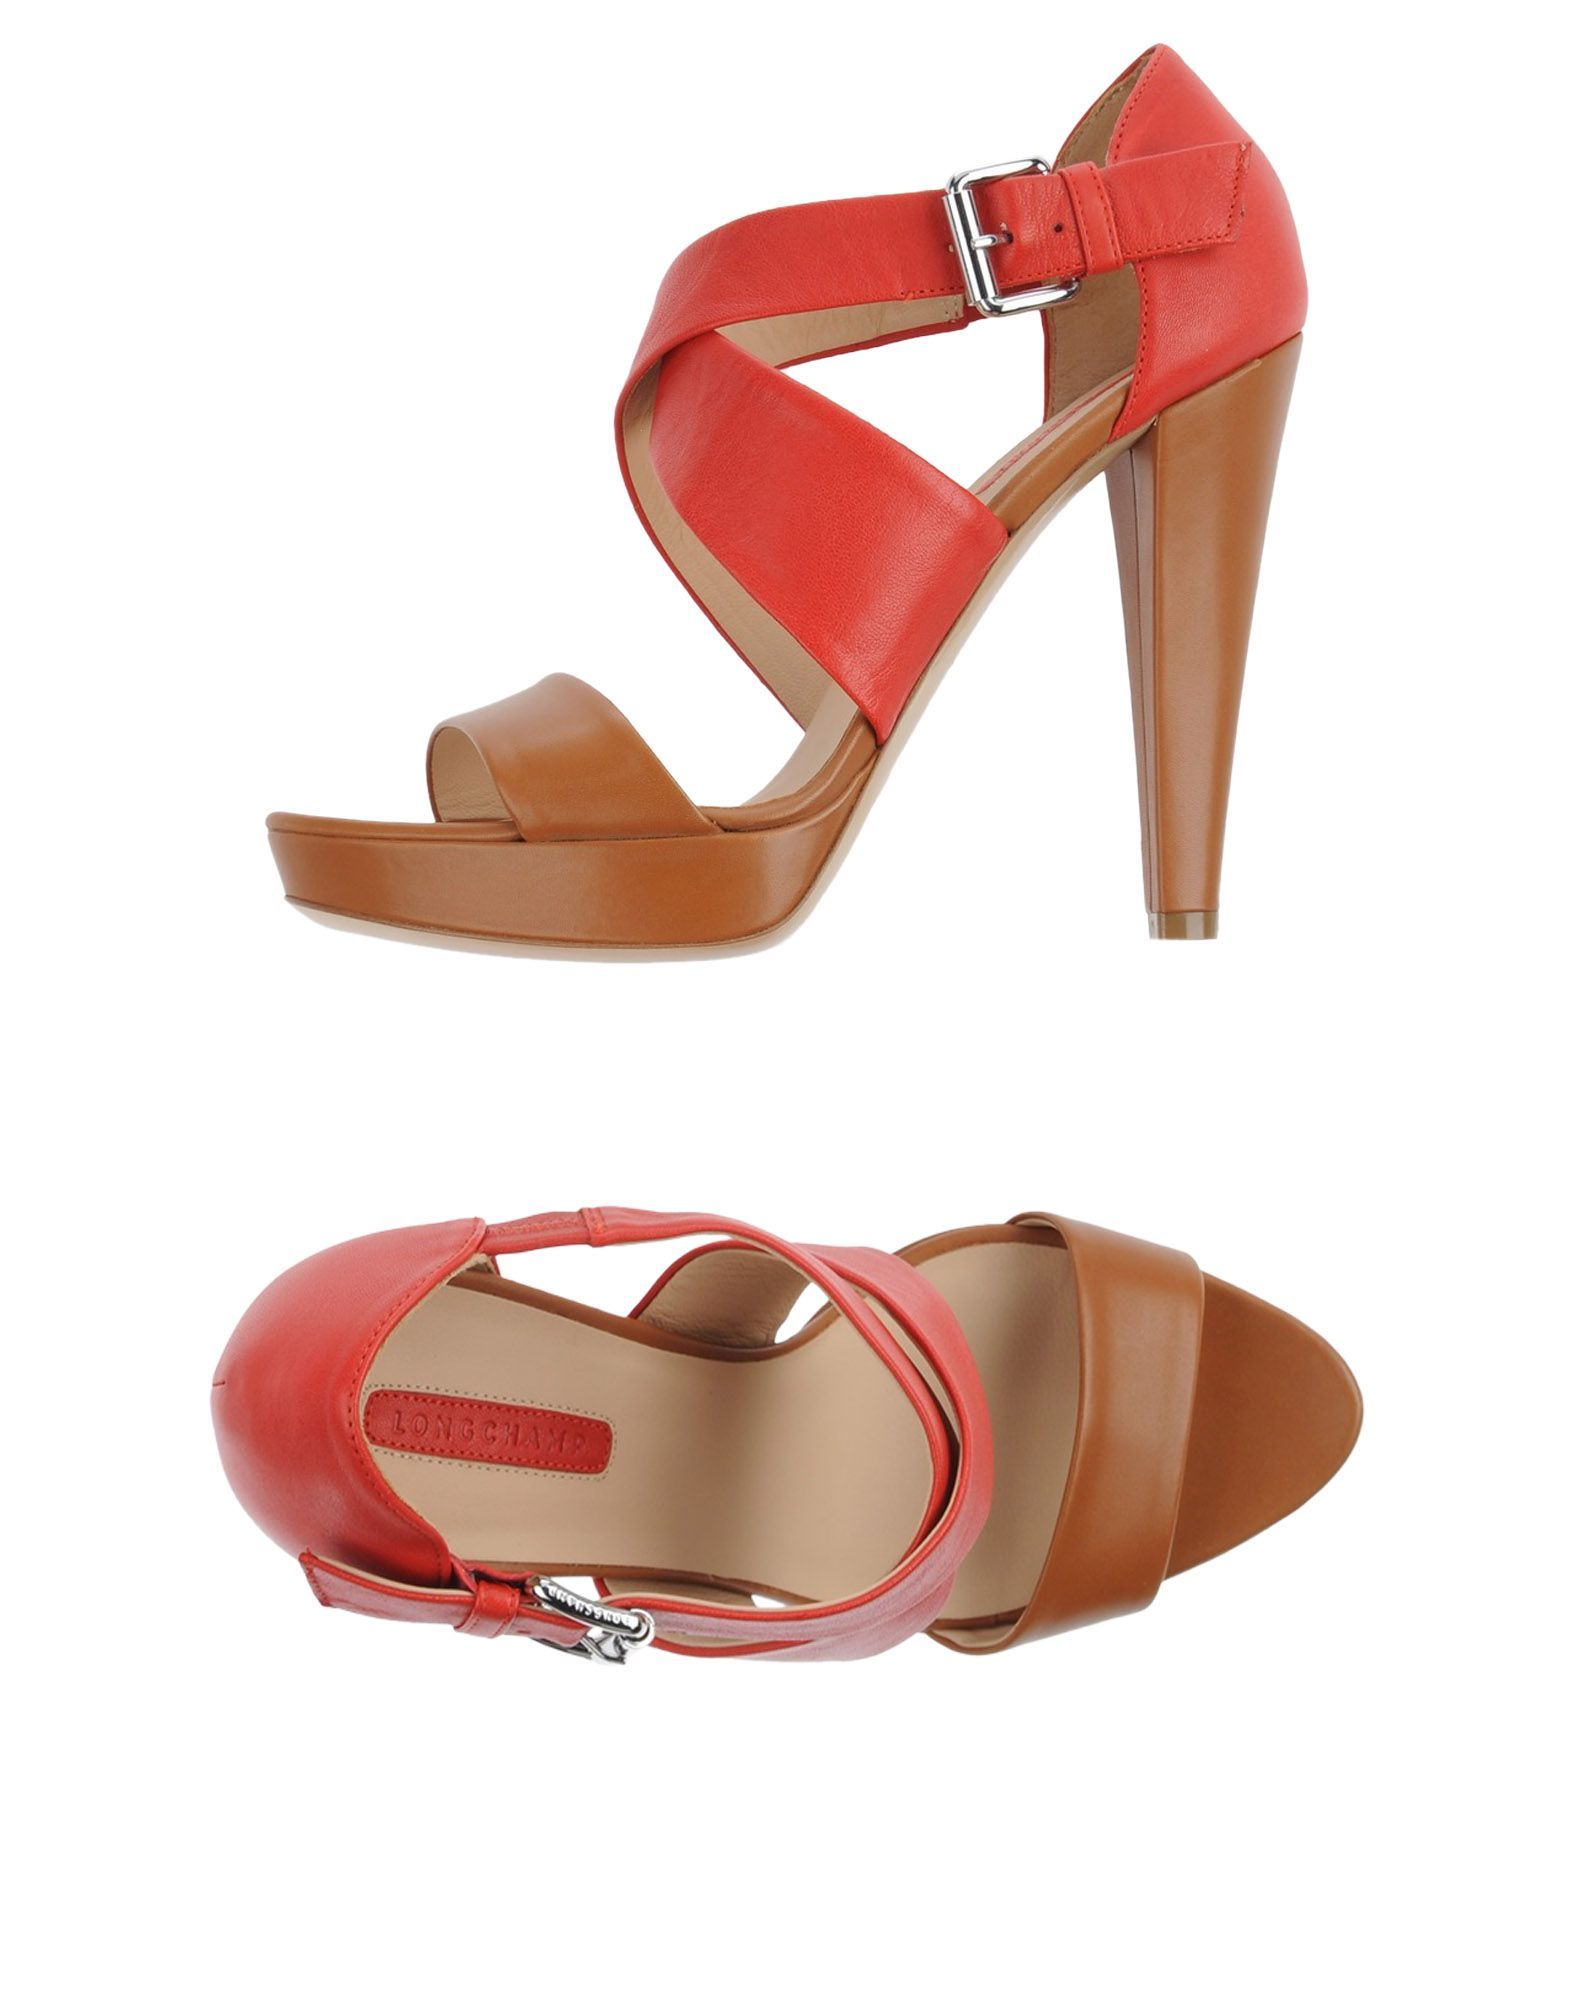 Longchamp Brown Leather Heeled Sandals